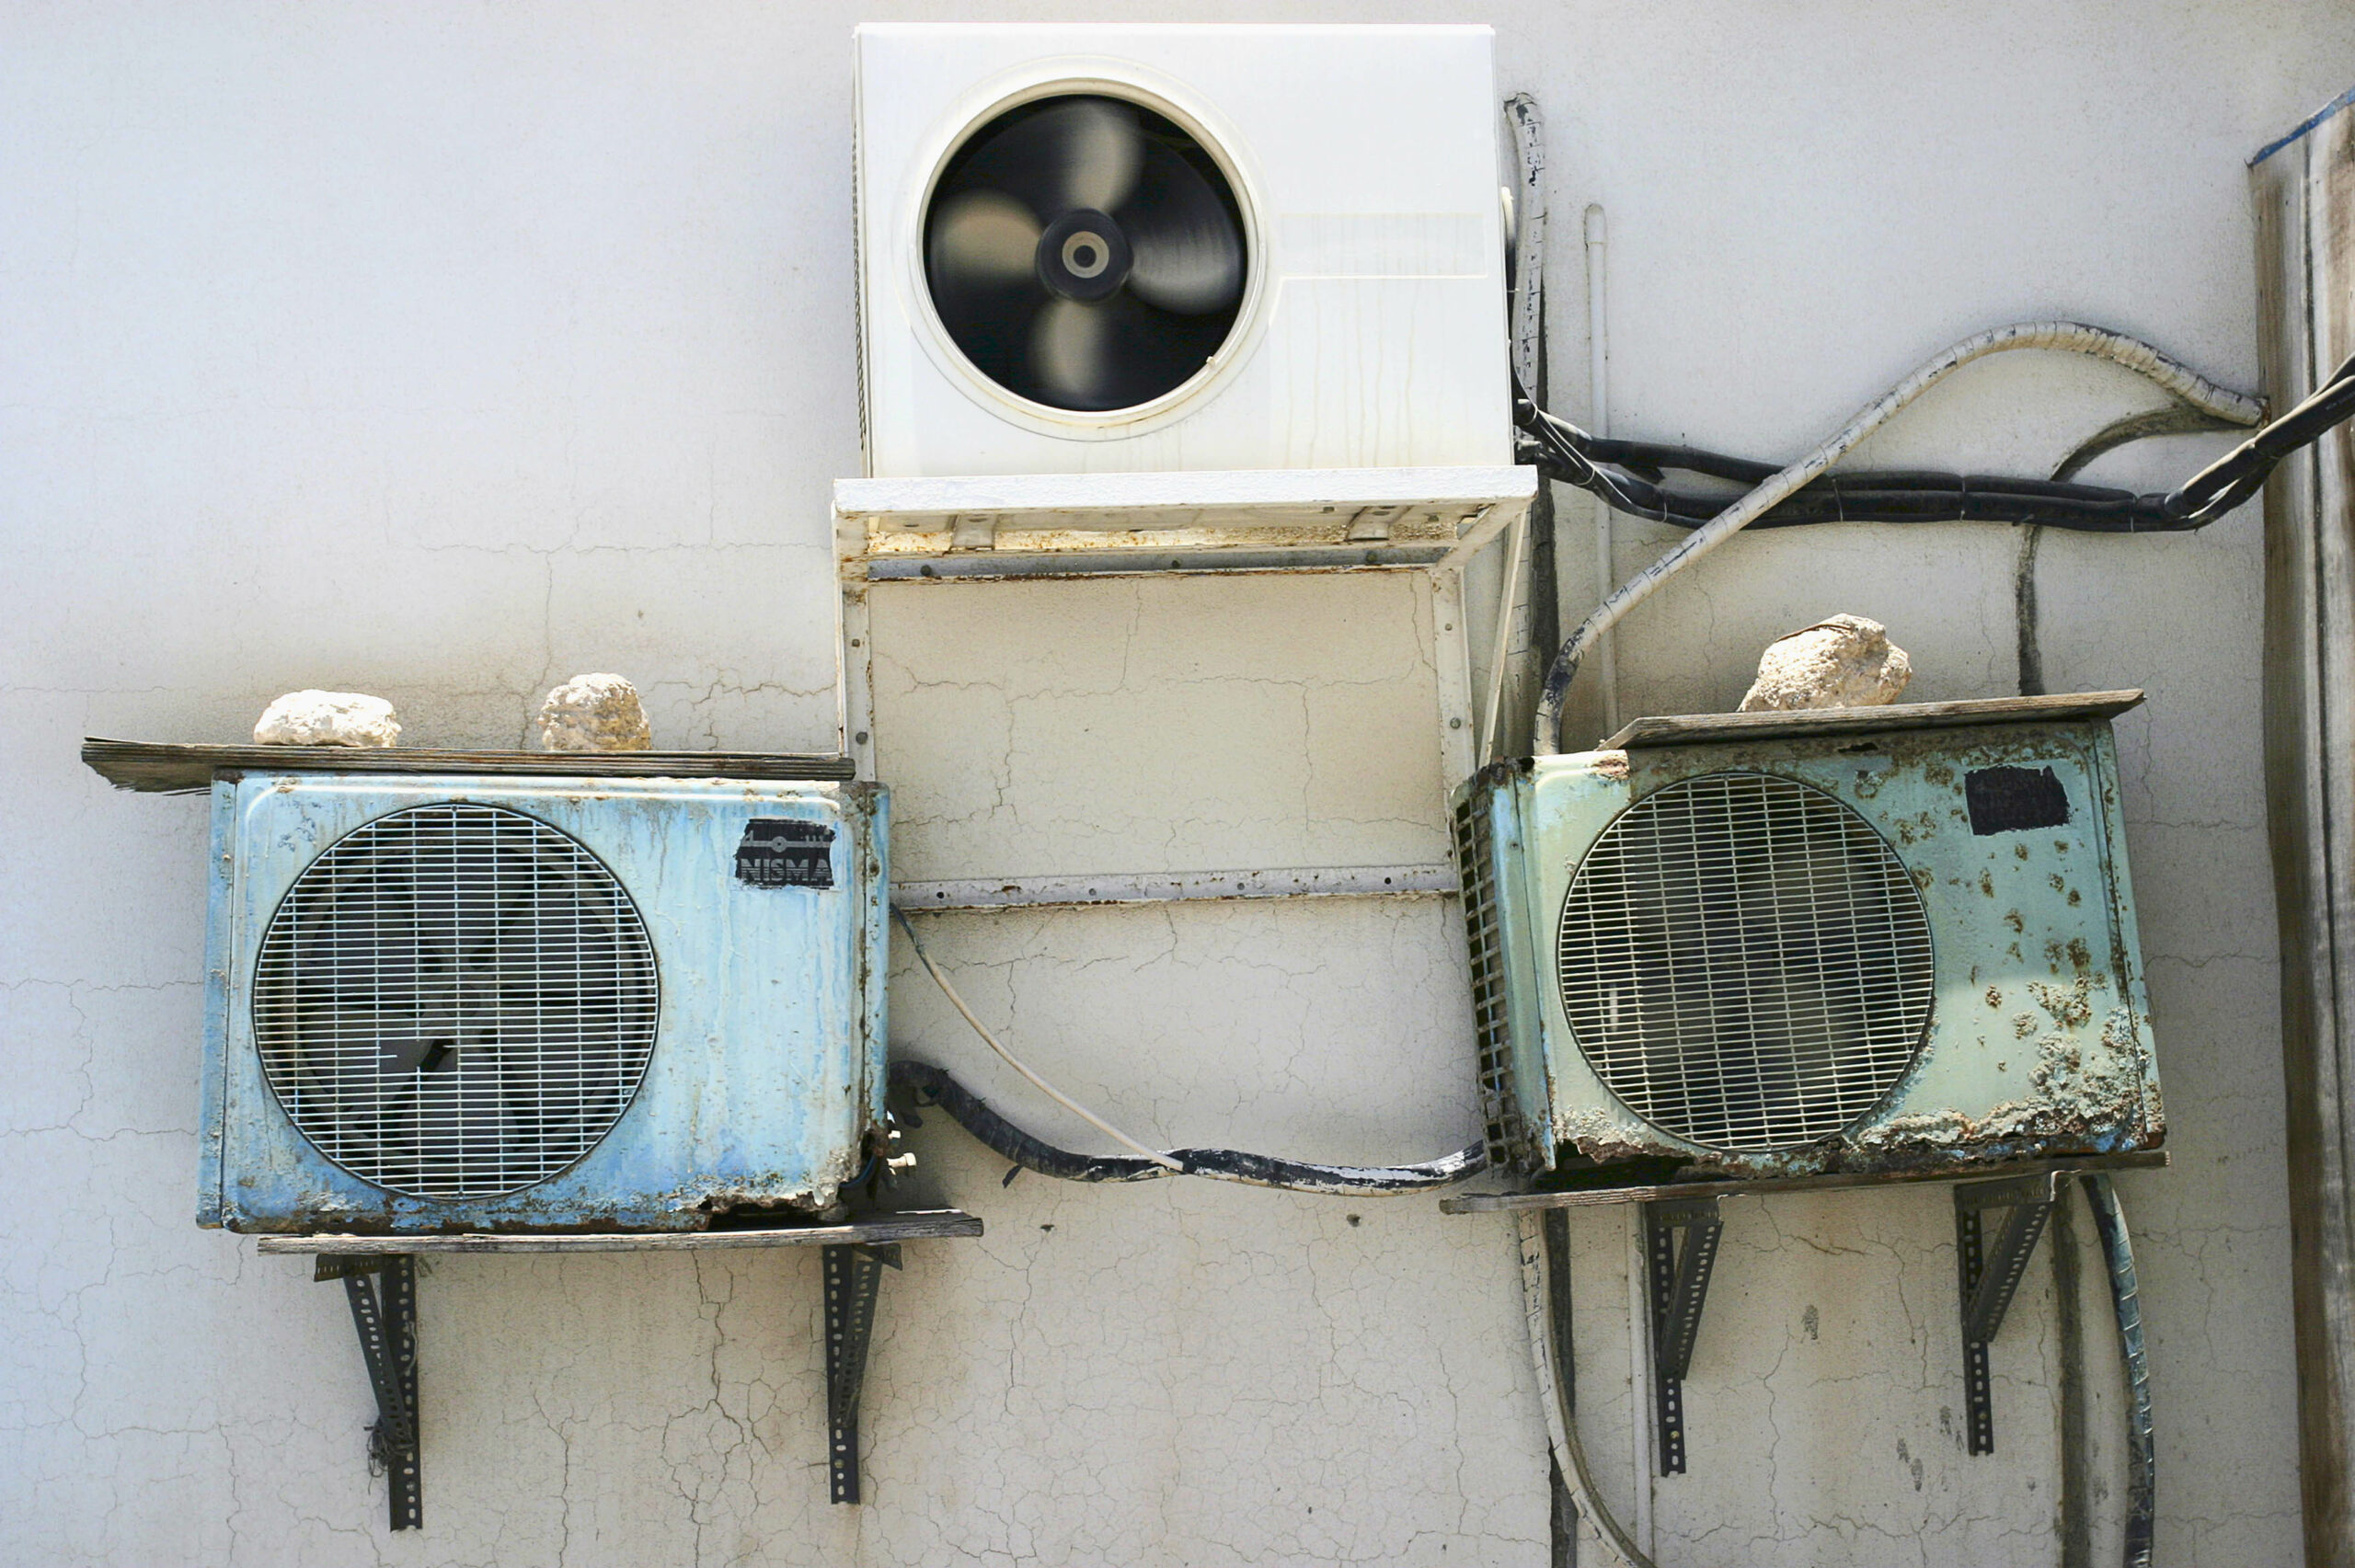 Air conditioning units on the side of a building. Credit: Jason Larkin/Construction Photography/Avalon/Getty Images